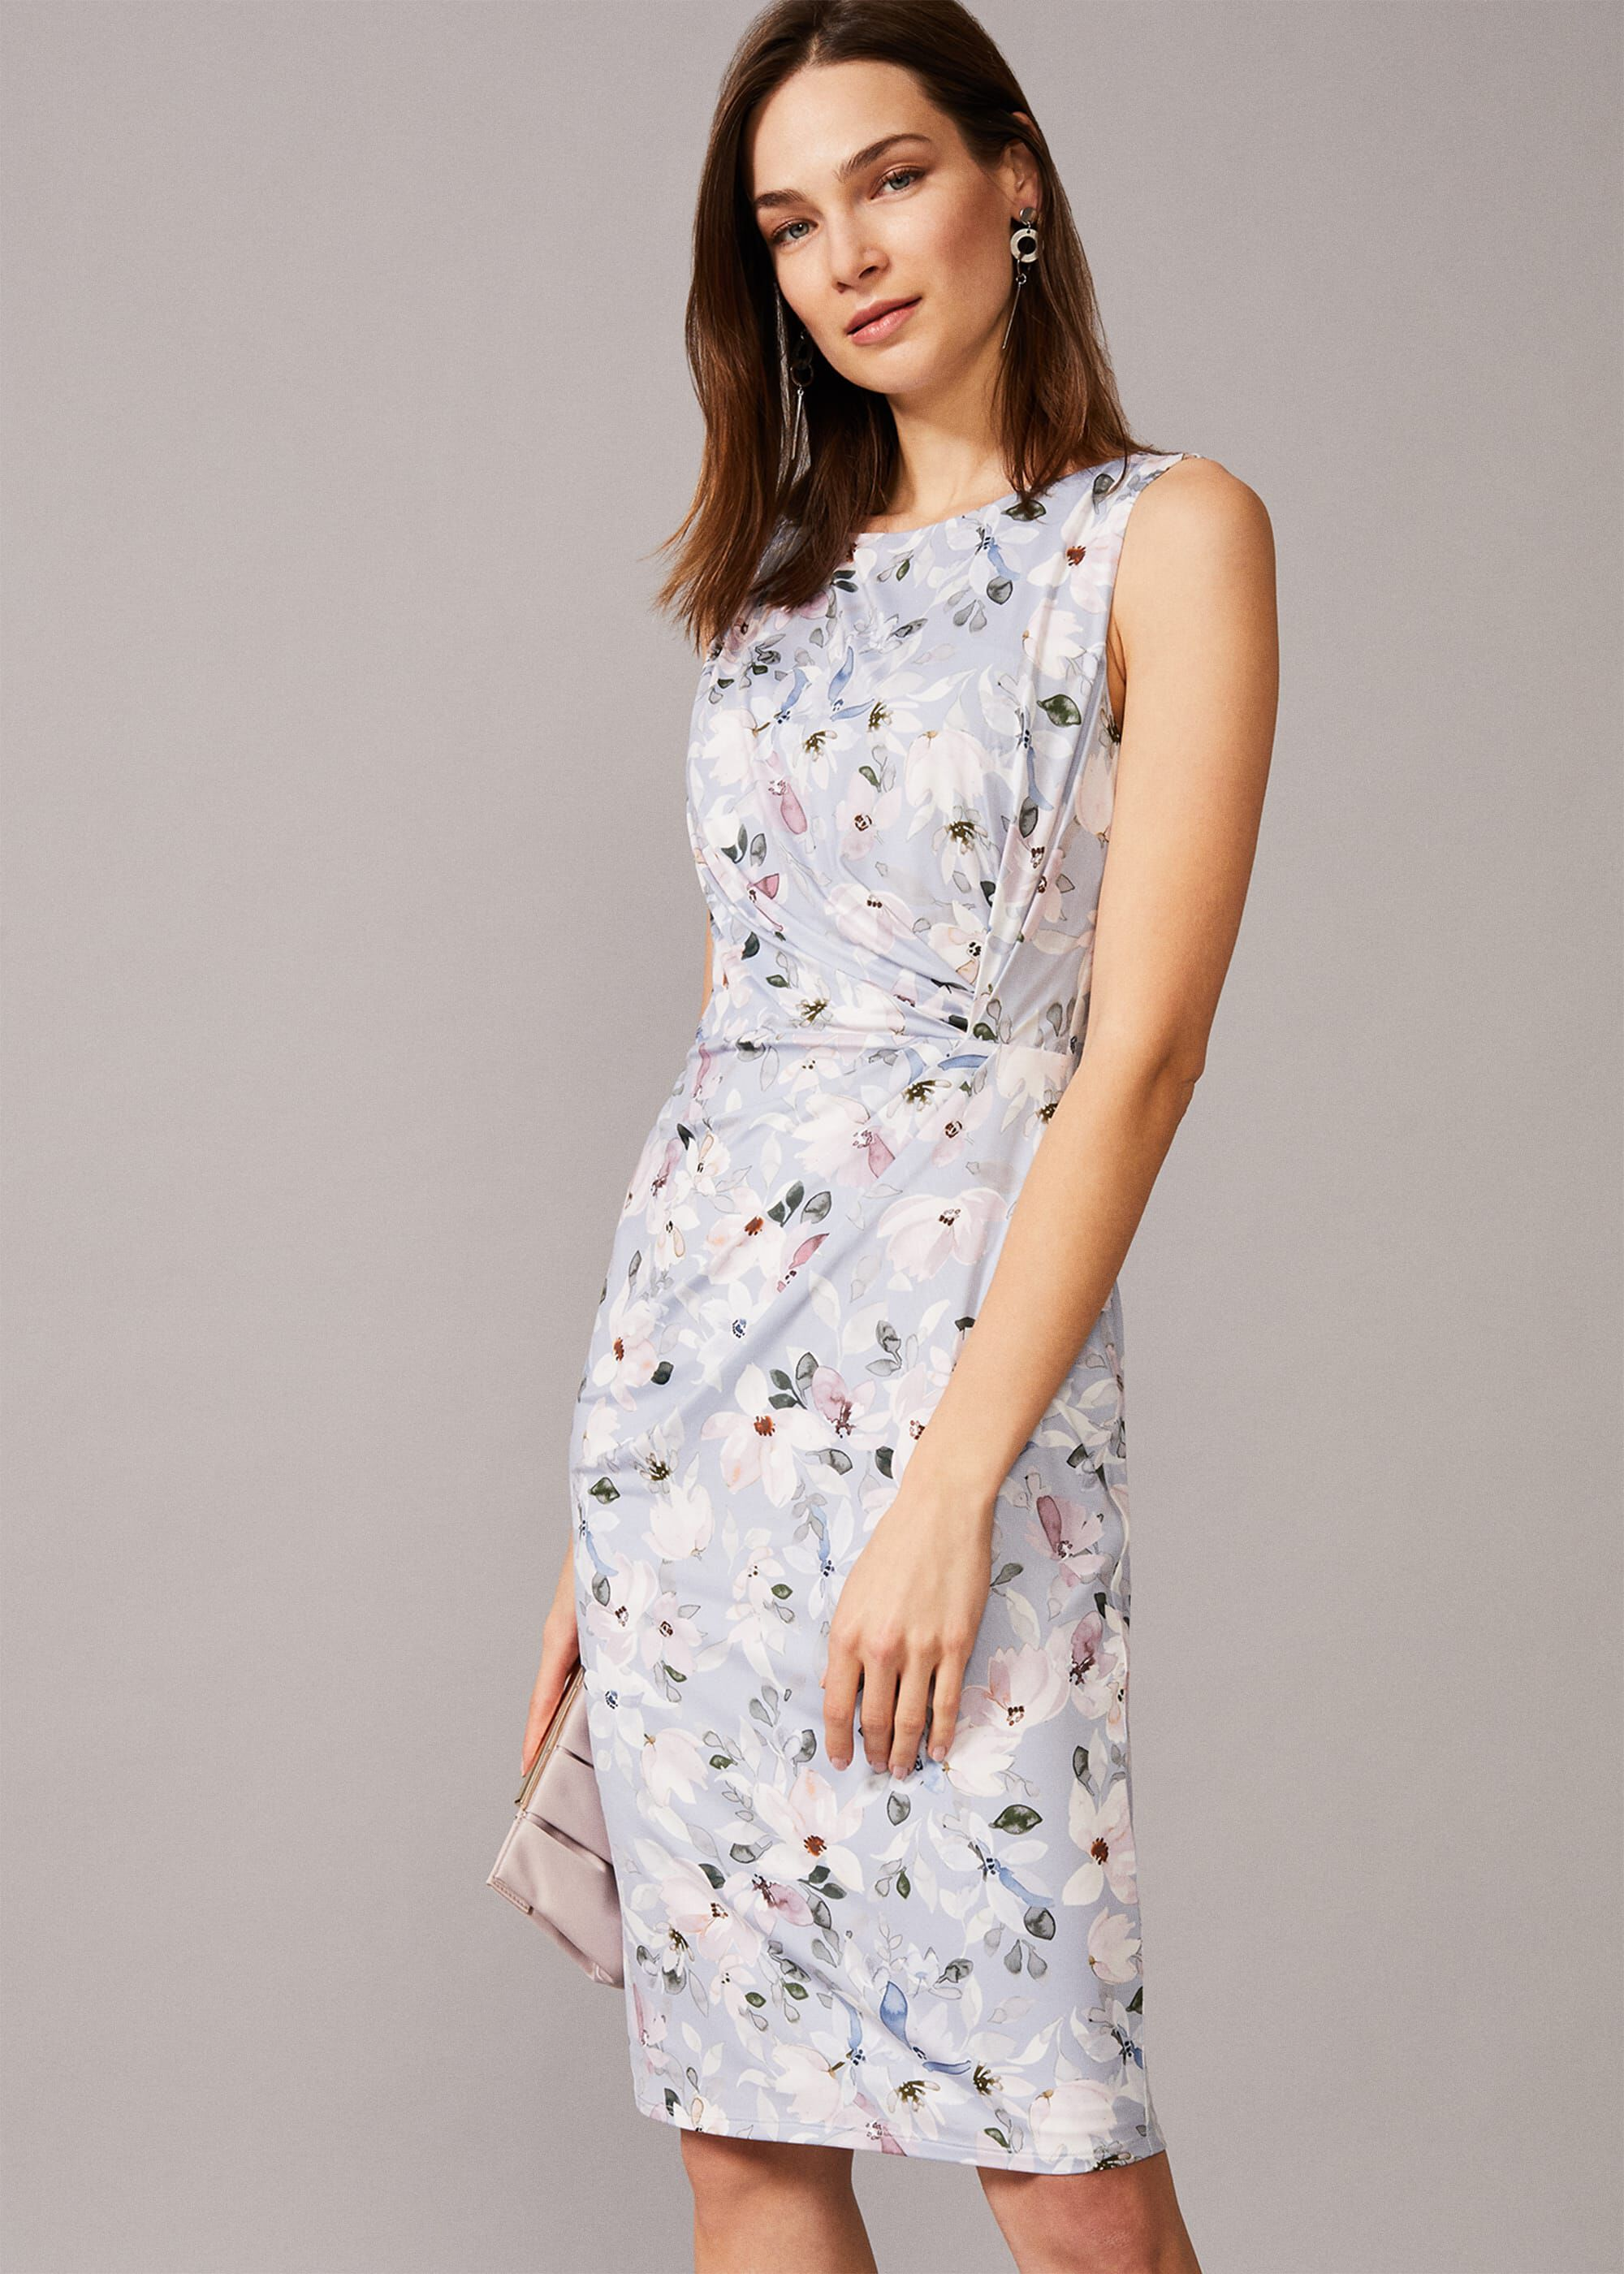 Phase Eight Etta Floral Jersey Dress, Green, Fitted, Occasion Dress